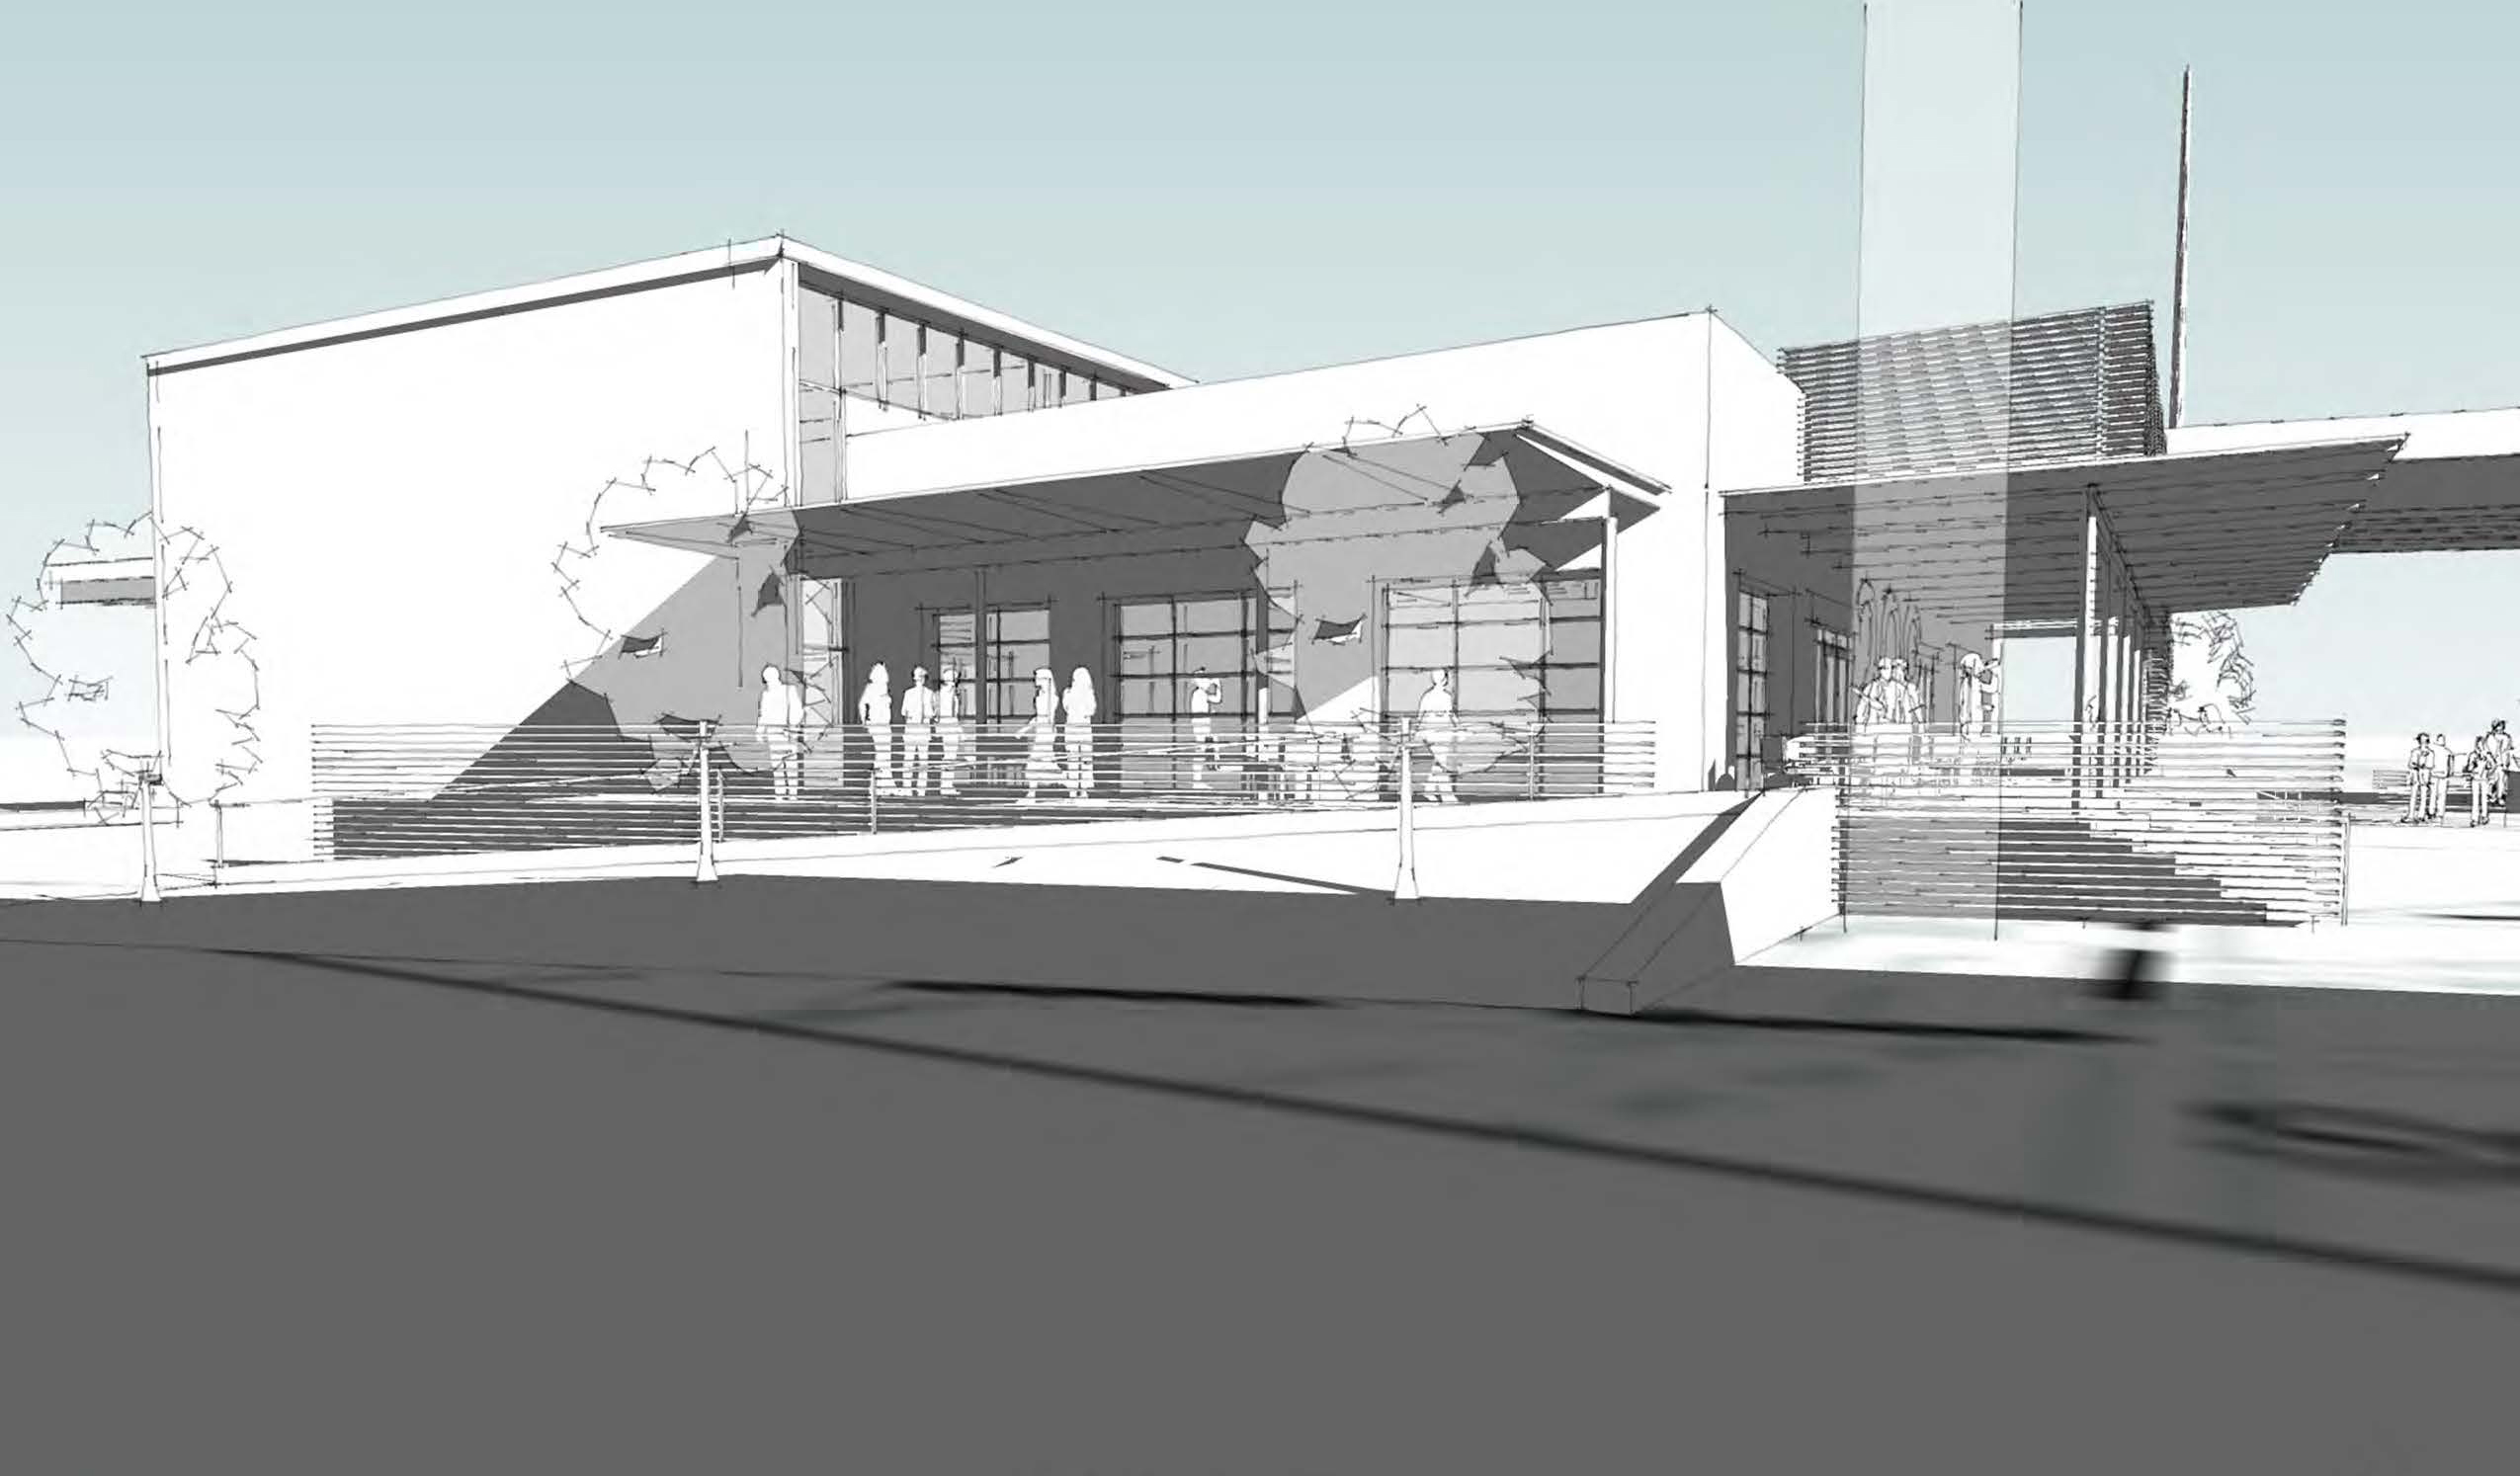 Arts Incubator Space - Program-Plan_Narrative_Renderings_5.1